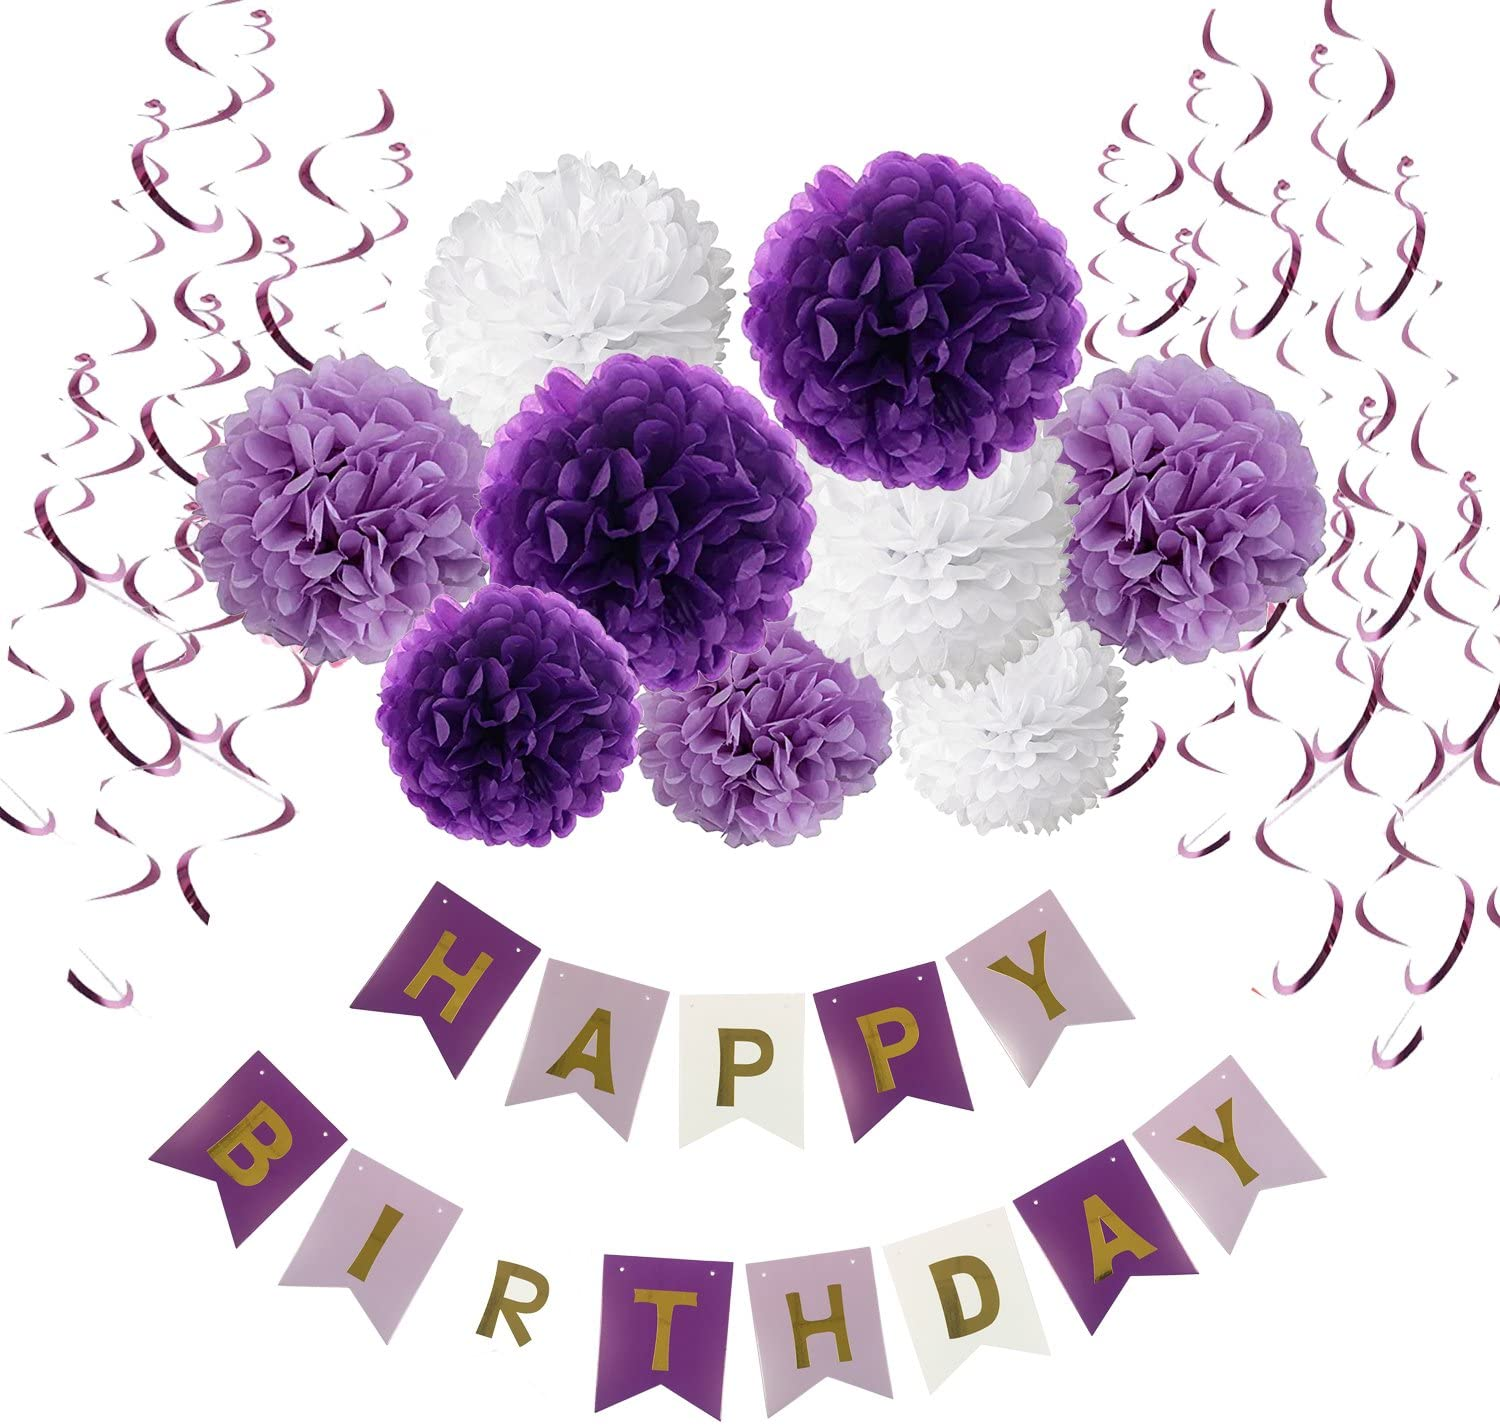 Recosis Birthday Decorations, Happy Birthday Banner Bunting with Tissue Paper Pom Poms and Hanging Swirl Decor for Birthday Party Decorations - Purple, Lavender and White